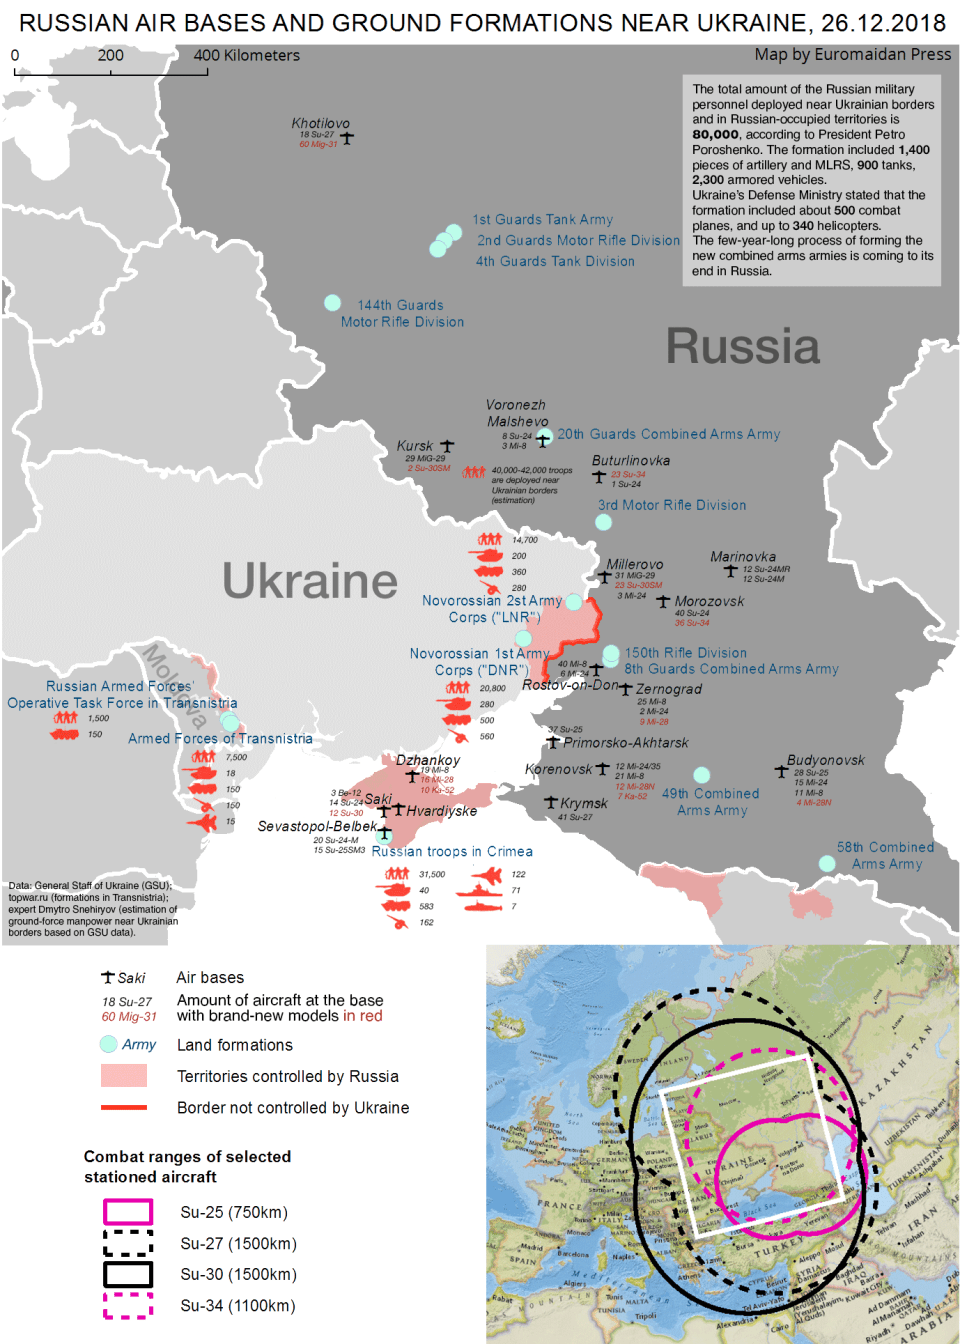 The infographic shows the data on the Russian military and paramilitary formations near the Ukrainian border and in the occupied territories. Here is an interactive map displaying the same data.